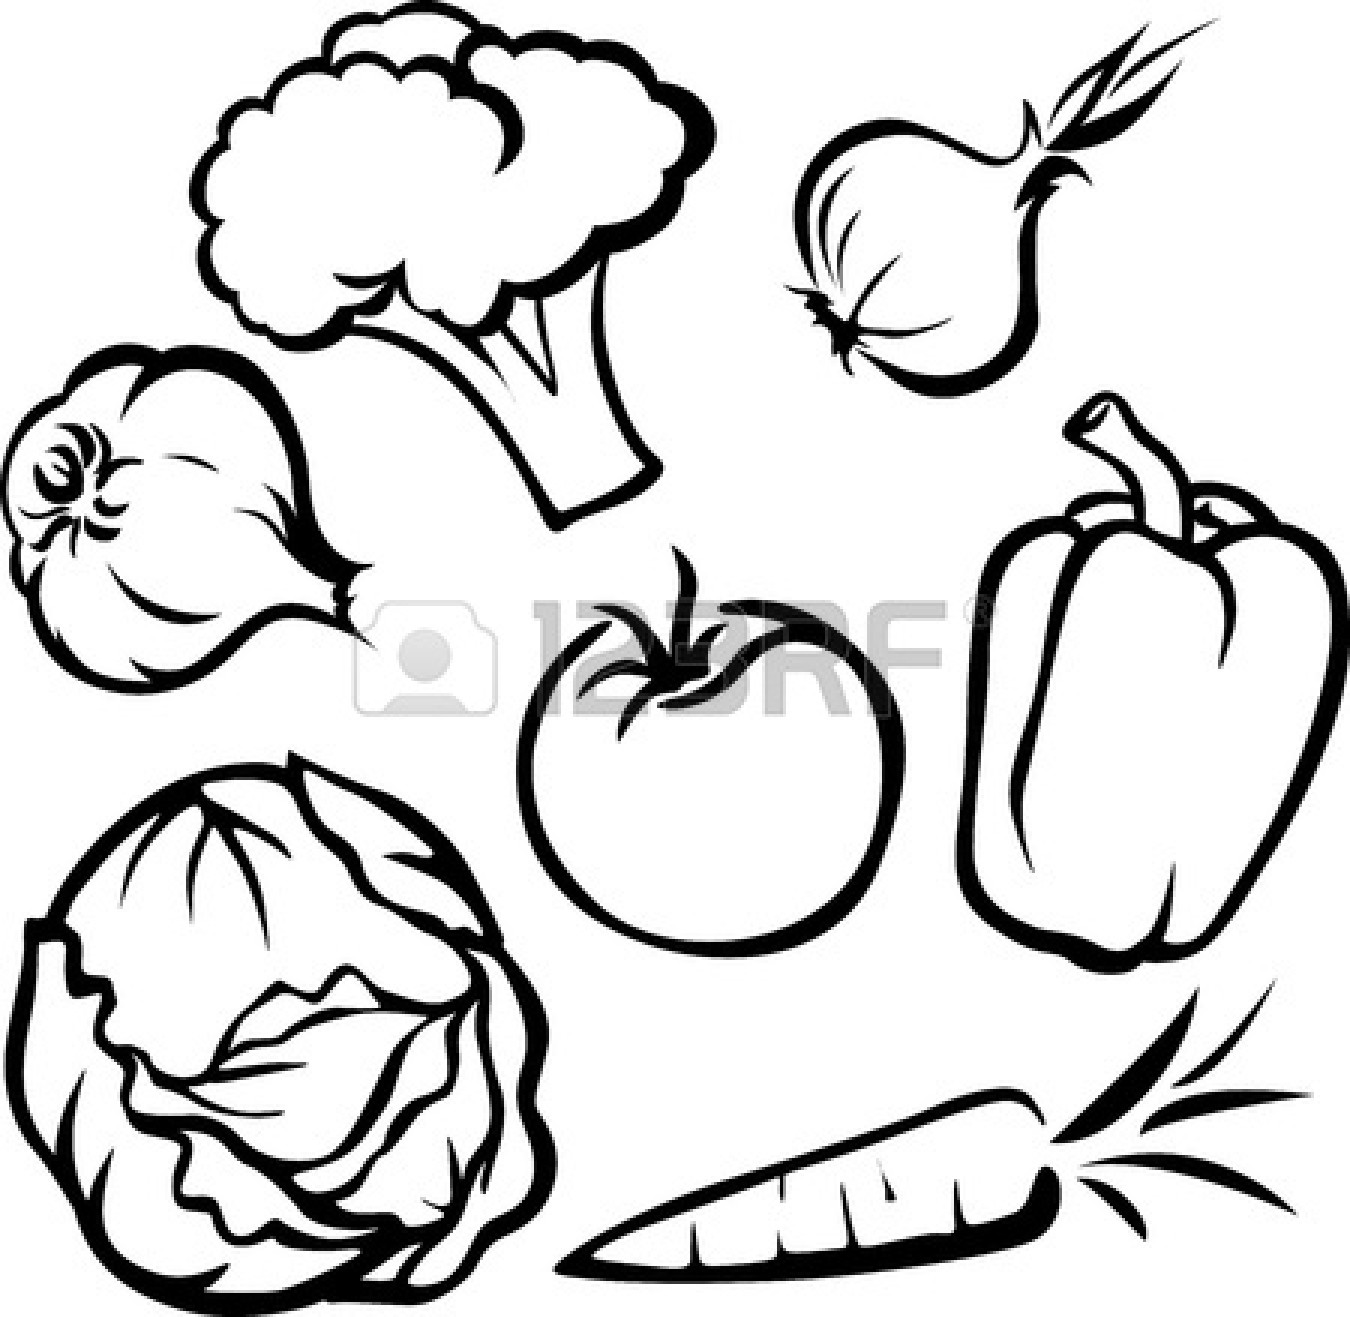 Eating fruits and vegetables clipart black and white banner black and white library Fruit And Vegetable Clipart | Free download best Fruit And Vegetable ... banner black and white library